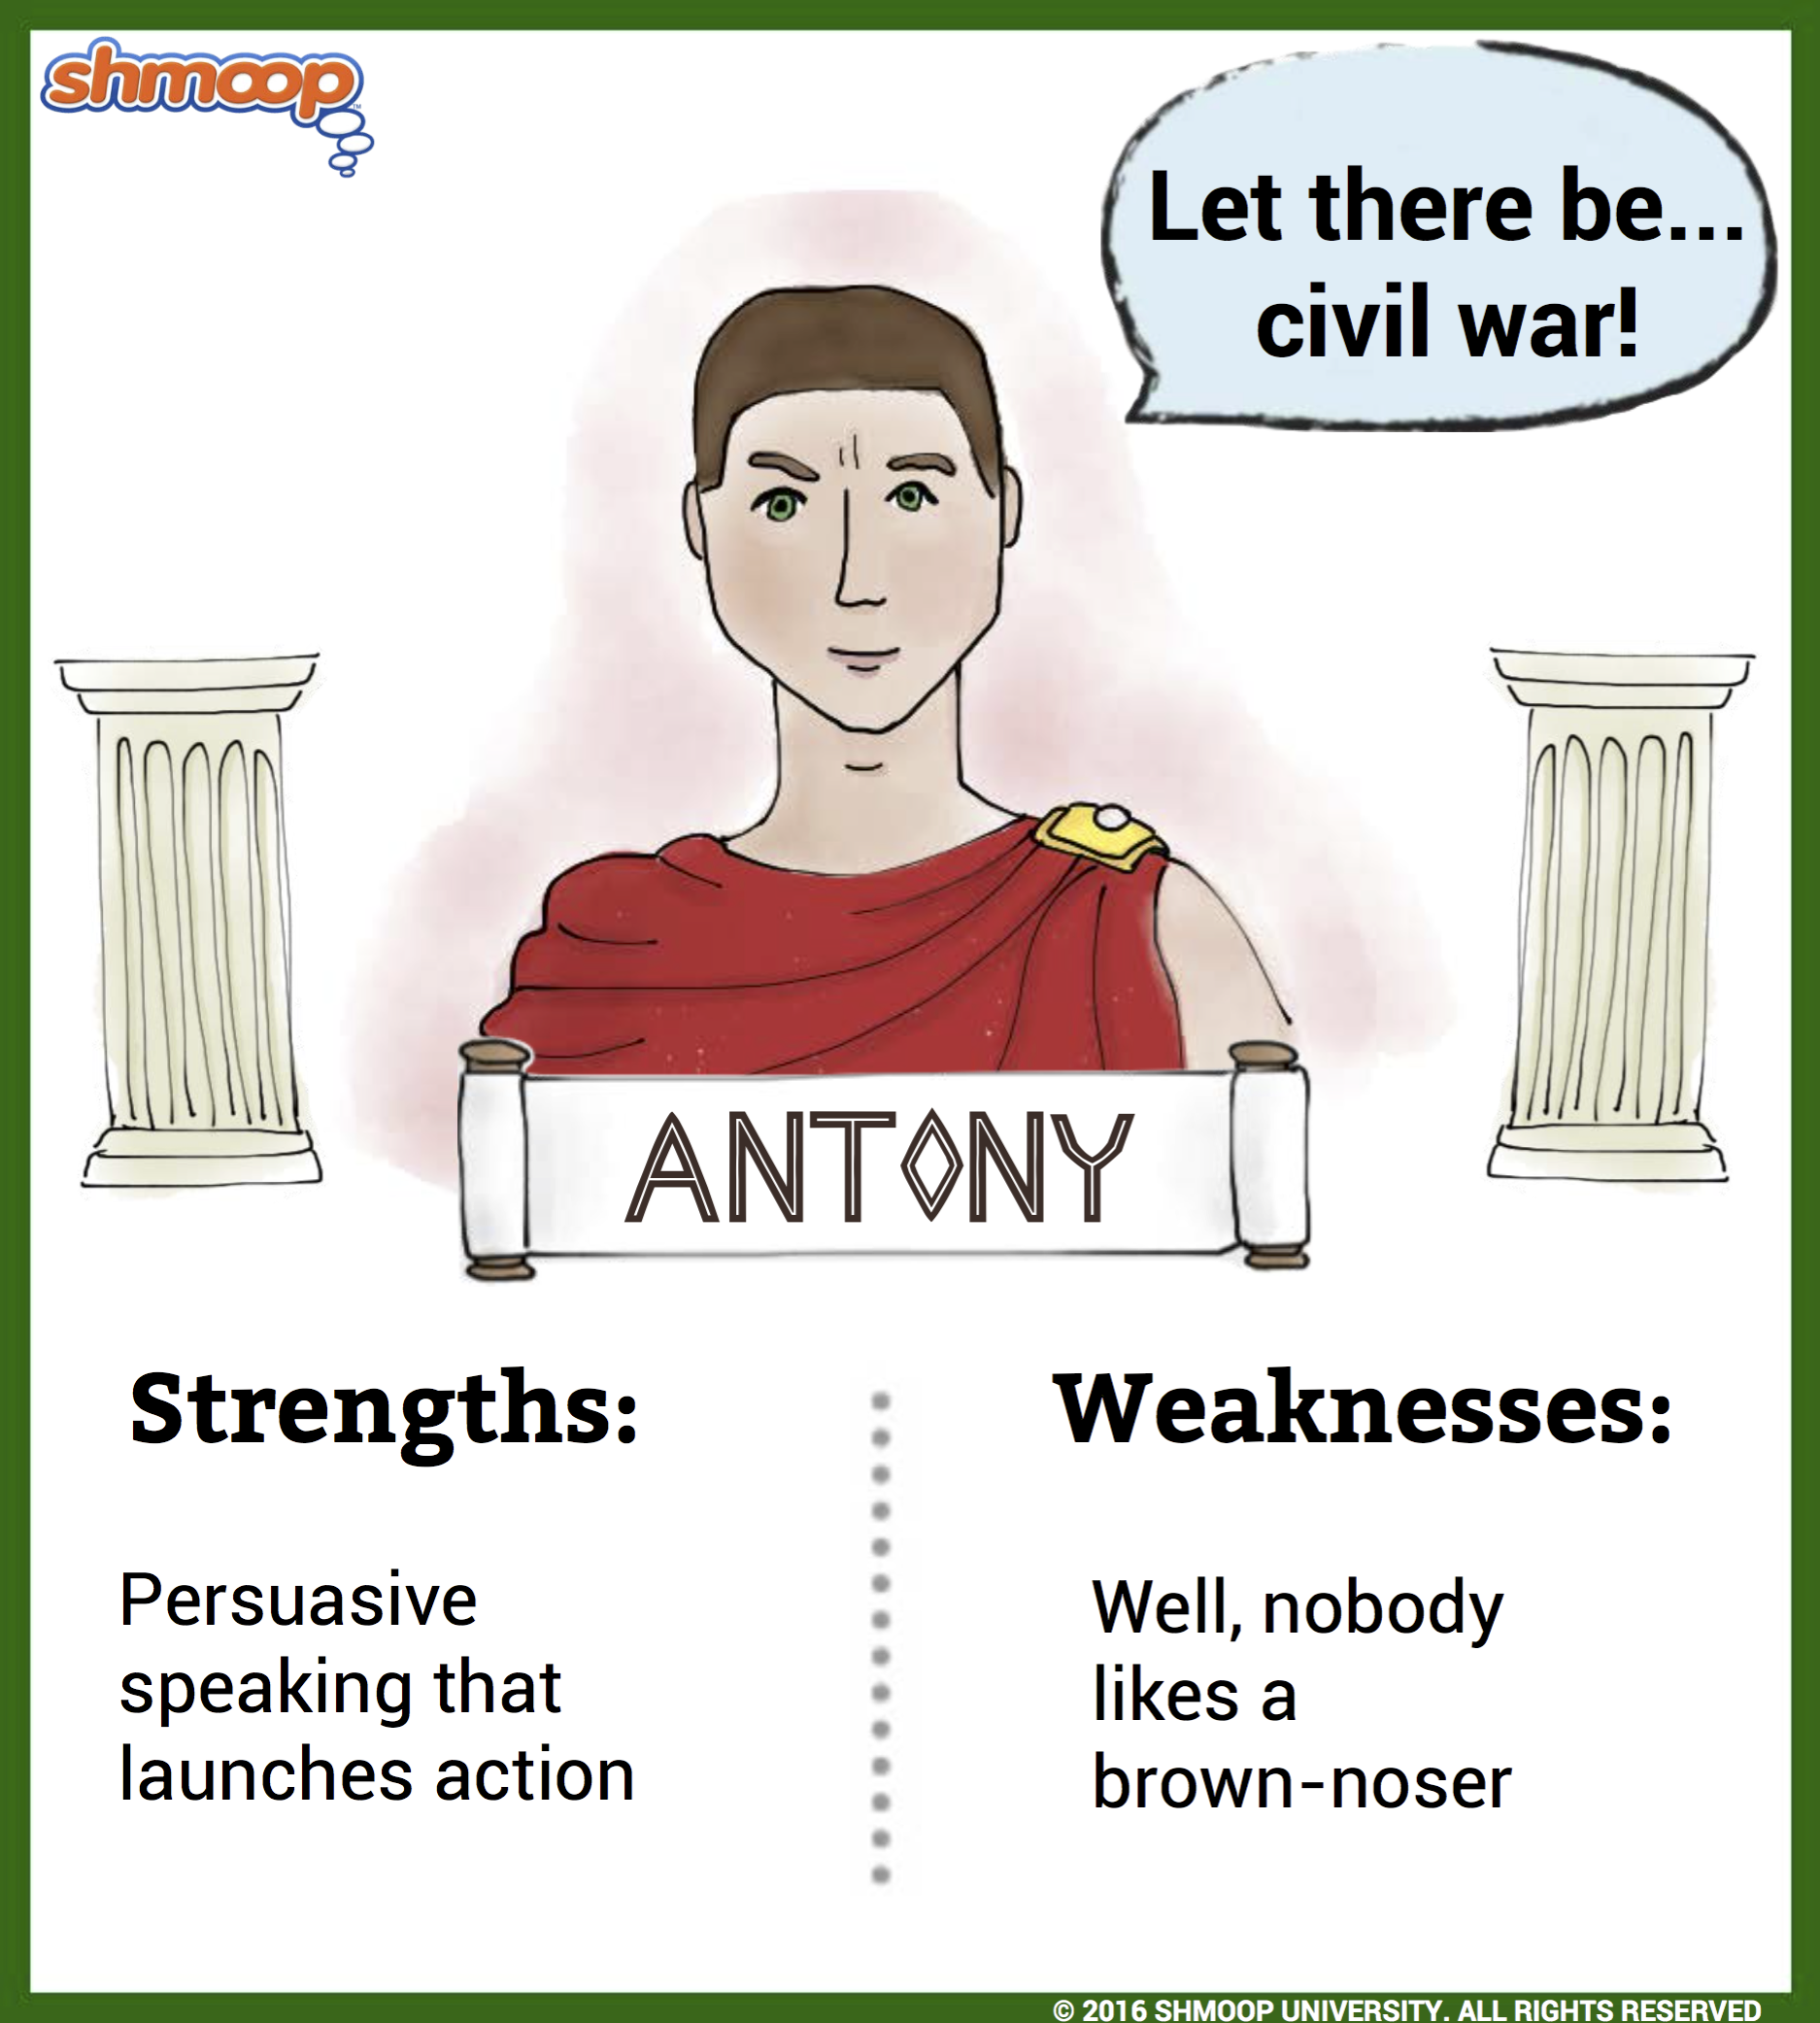 a summary of julius caesar by shakespeare Read this julius caesar summary alongside the original text for help understanding the play one of shakespeare's historical plays, julius caesar is a favorite for high school teachers to assign to their students.